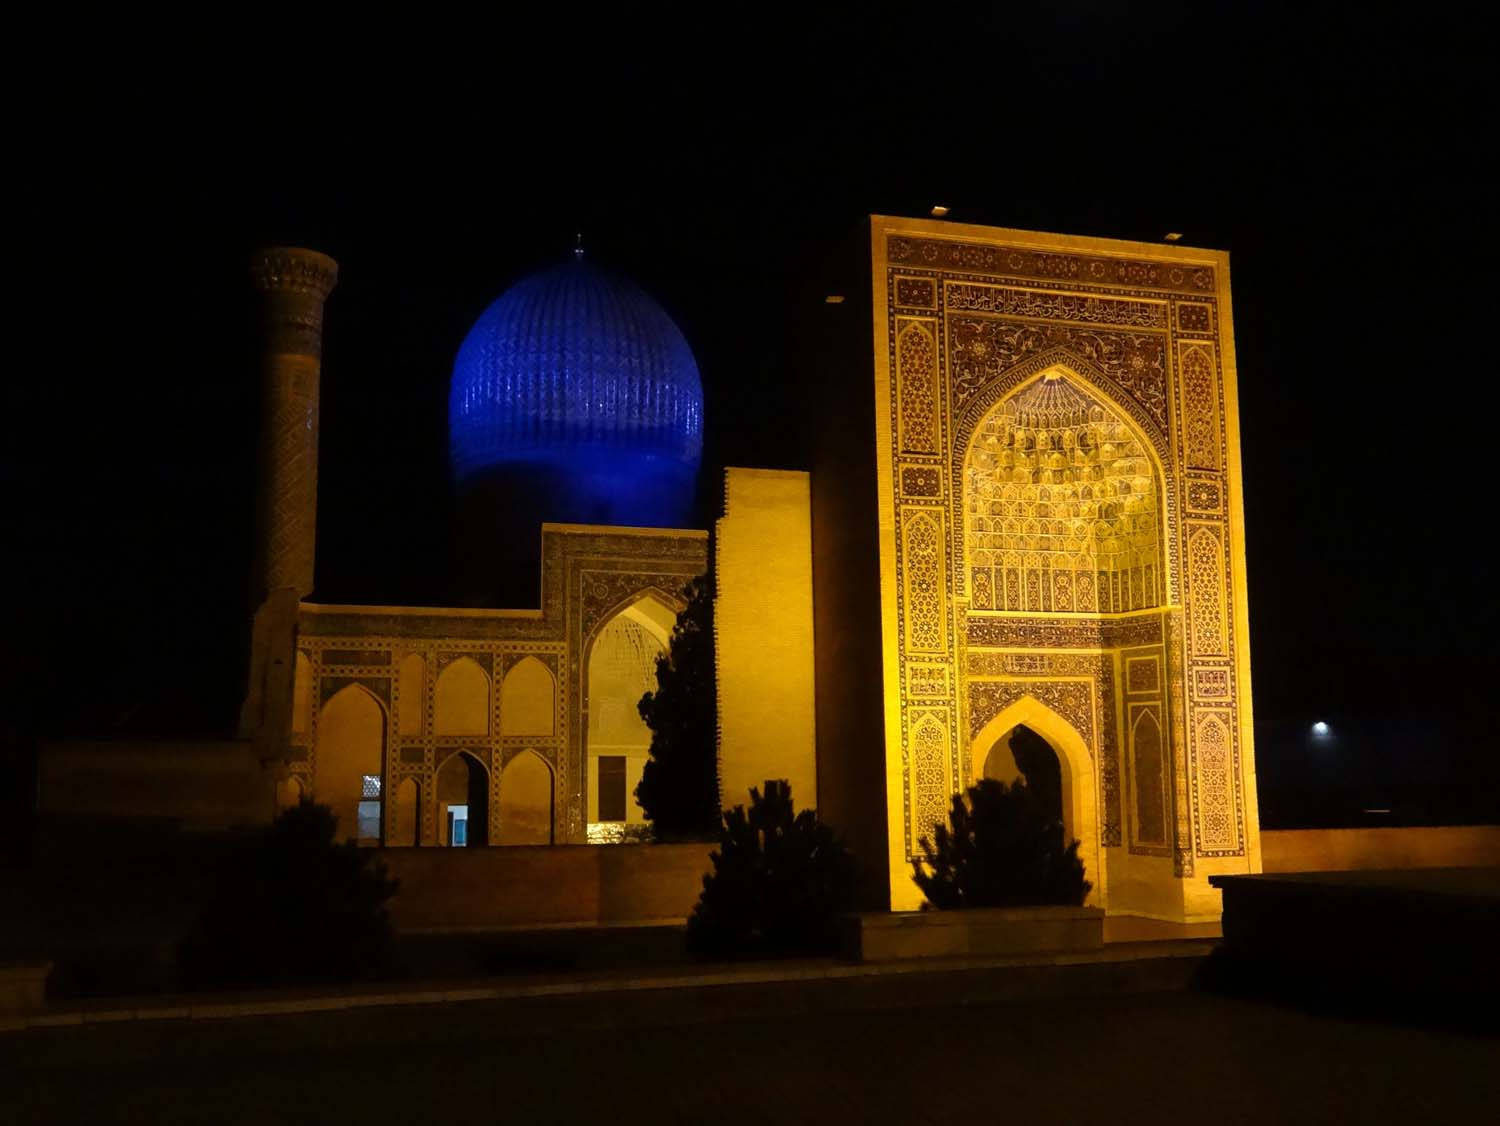 Gur-e-Amir mausoleum at night, straight out of 1001 Arabian nights